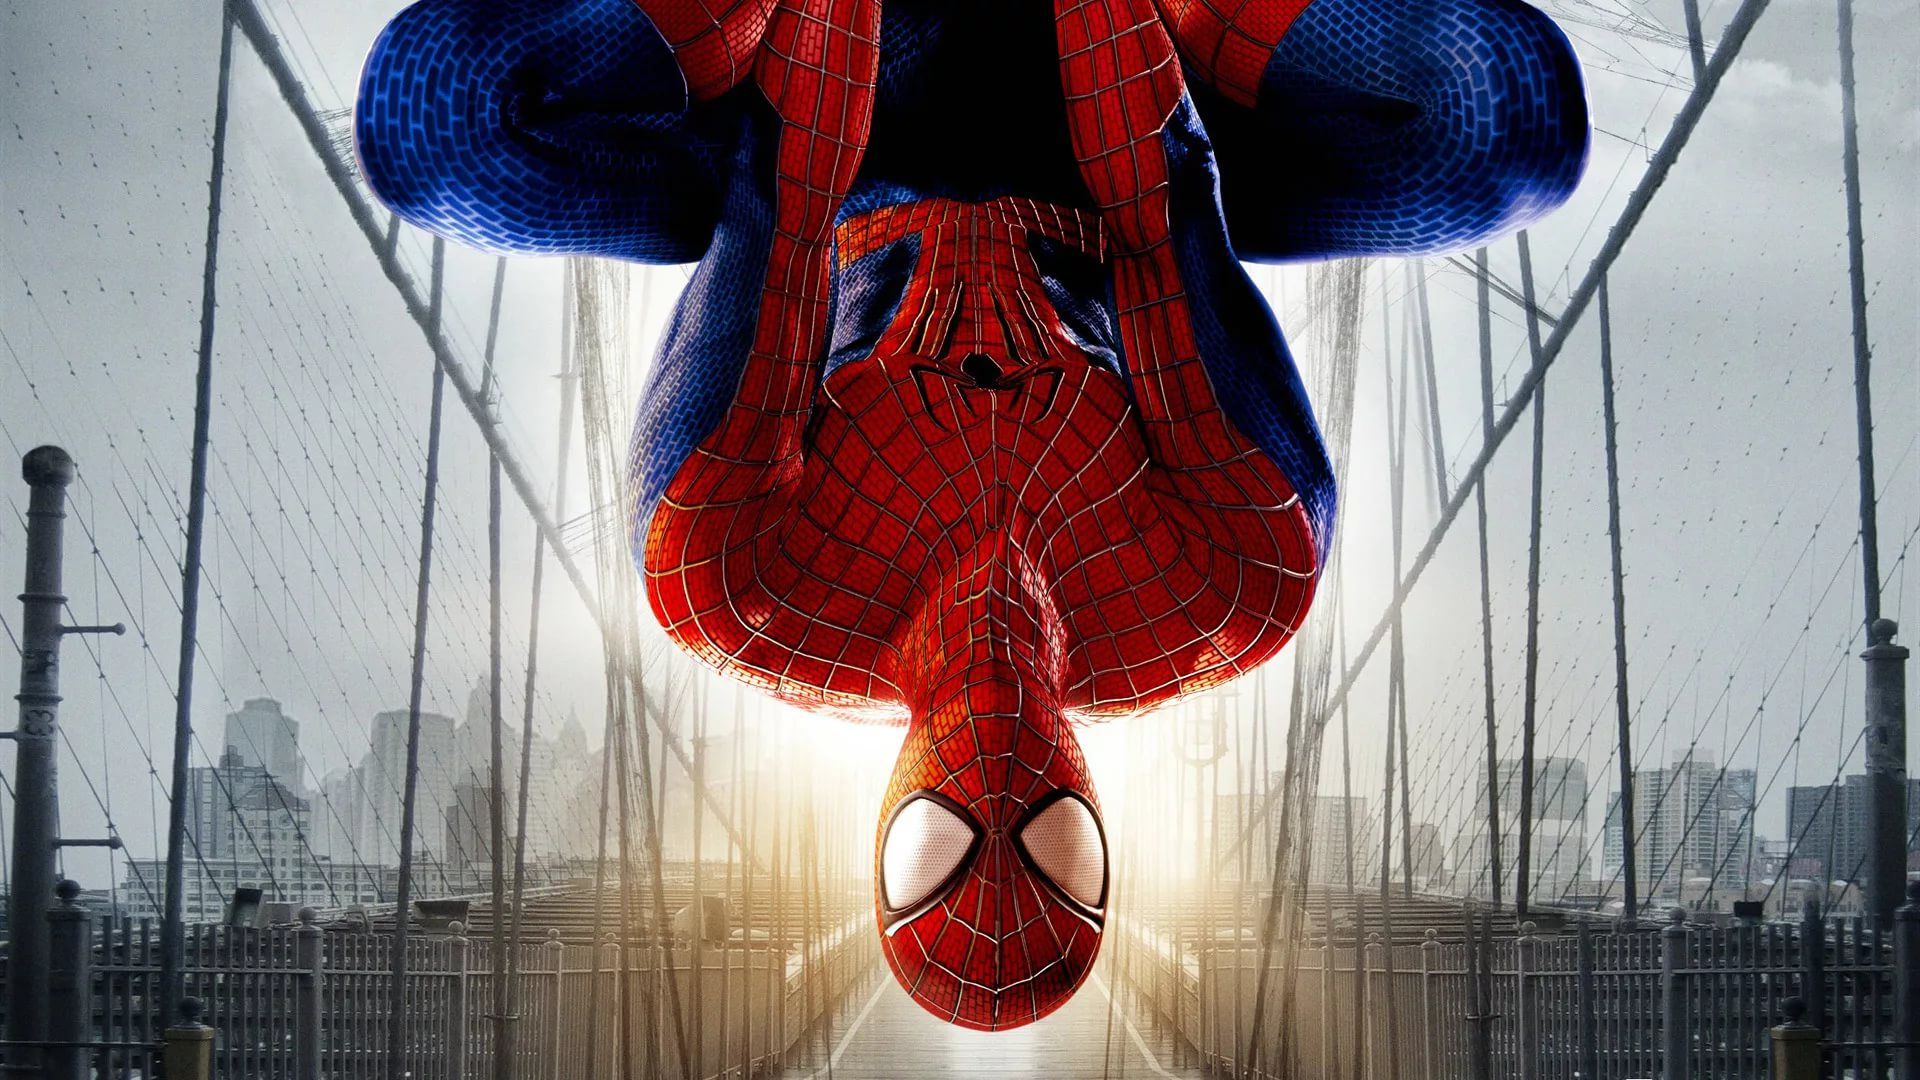 Spiderman wallpaper photo full hd